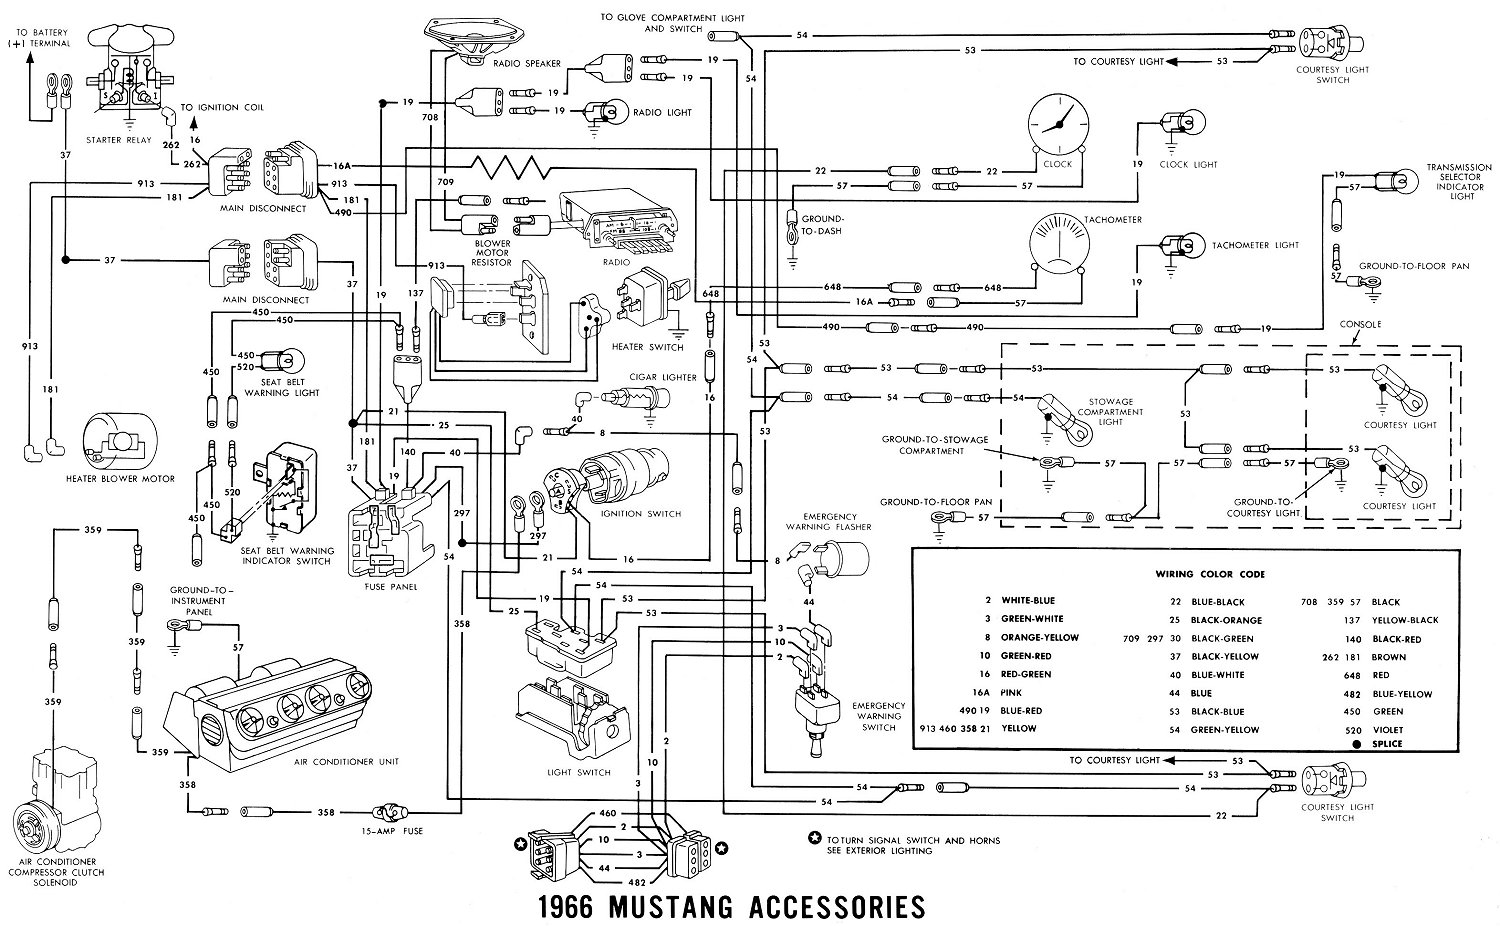 1966 Mustang Wiring Diagrams on 2001 audi a6 fuel pump wiring diagram